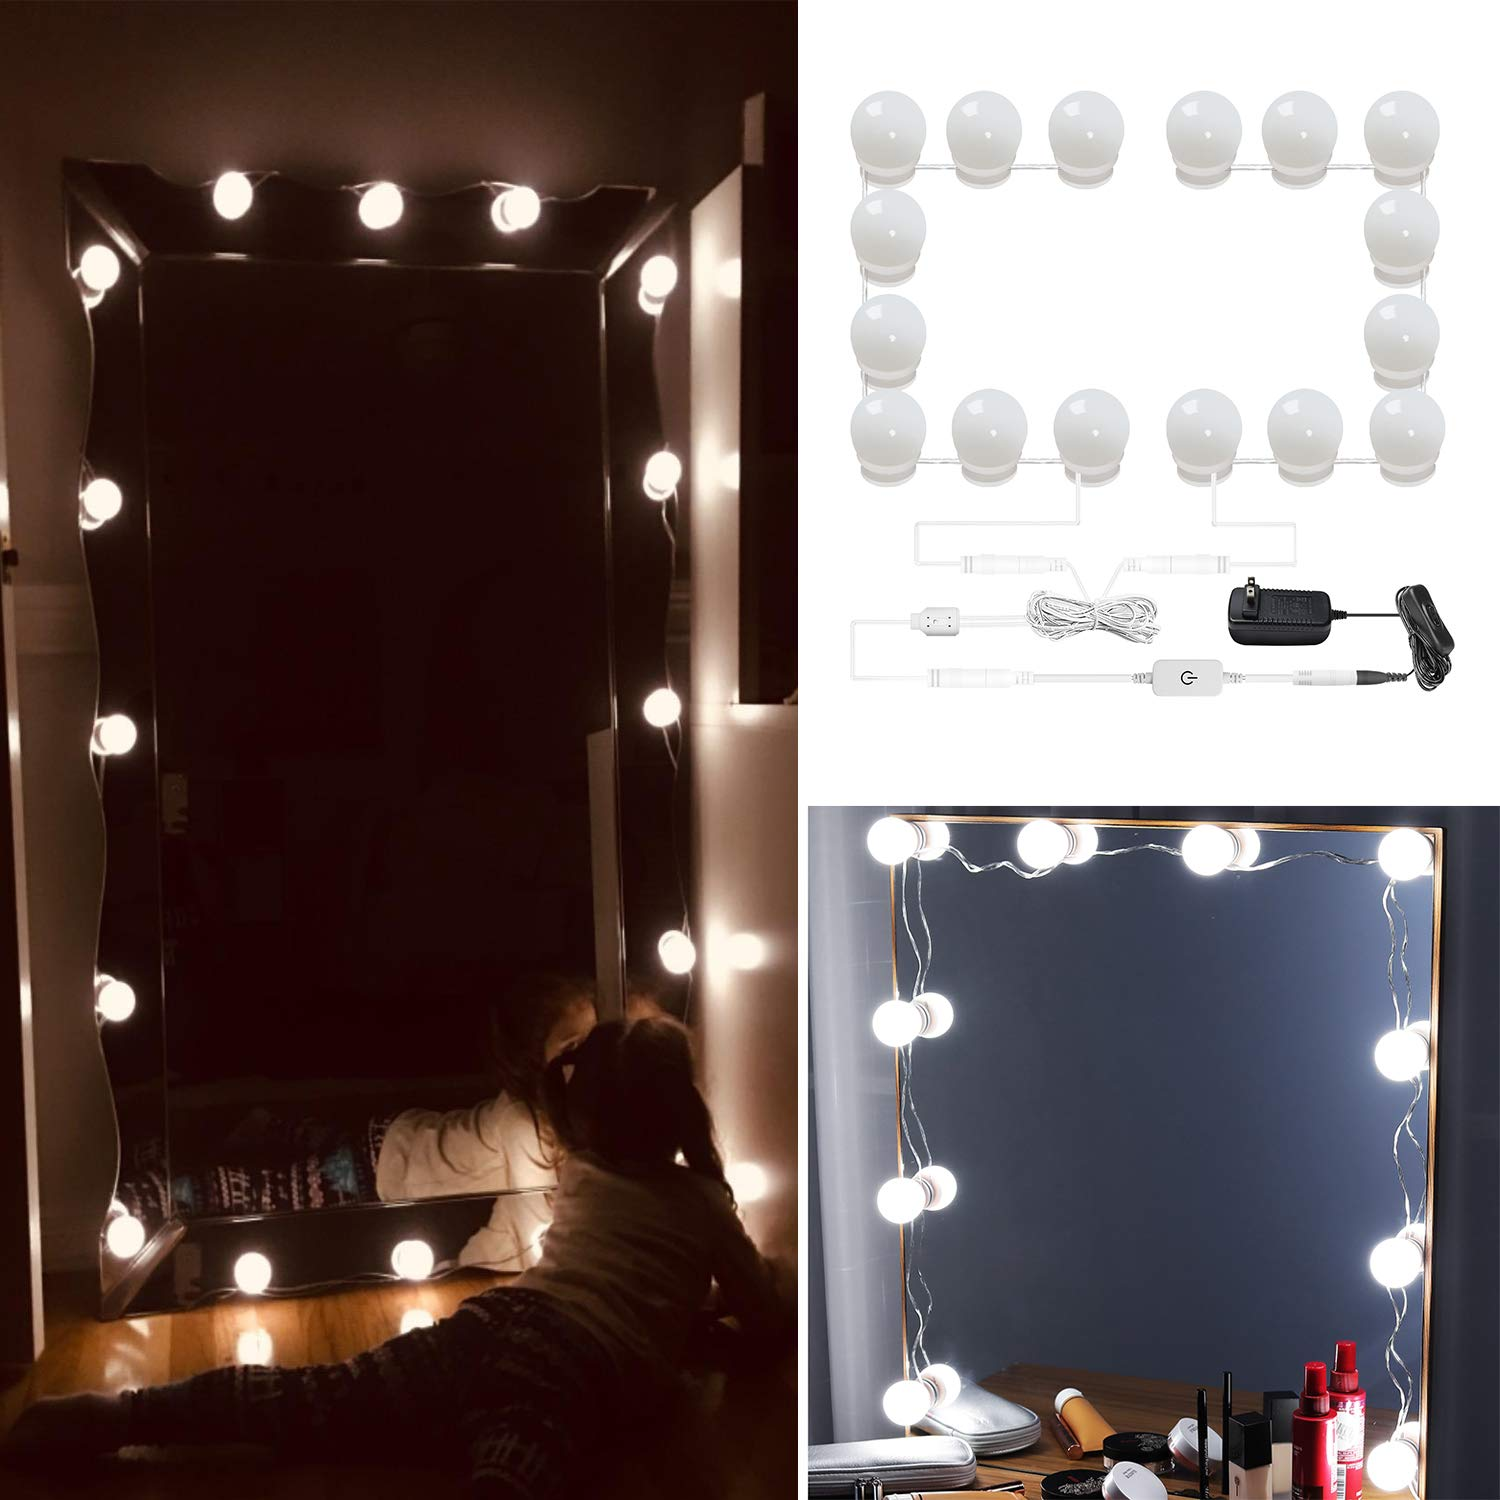 AIBOO Hollywood Style Lighted Vanity Makeup Mirror, LED Vanity Mirror Lights Kit for Dressing Table, Dimmable and Adapter Plug in, Mirror Not Included (16 Bulbs Natural White) by AIBOO (Image #1)